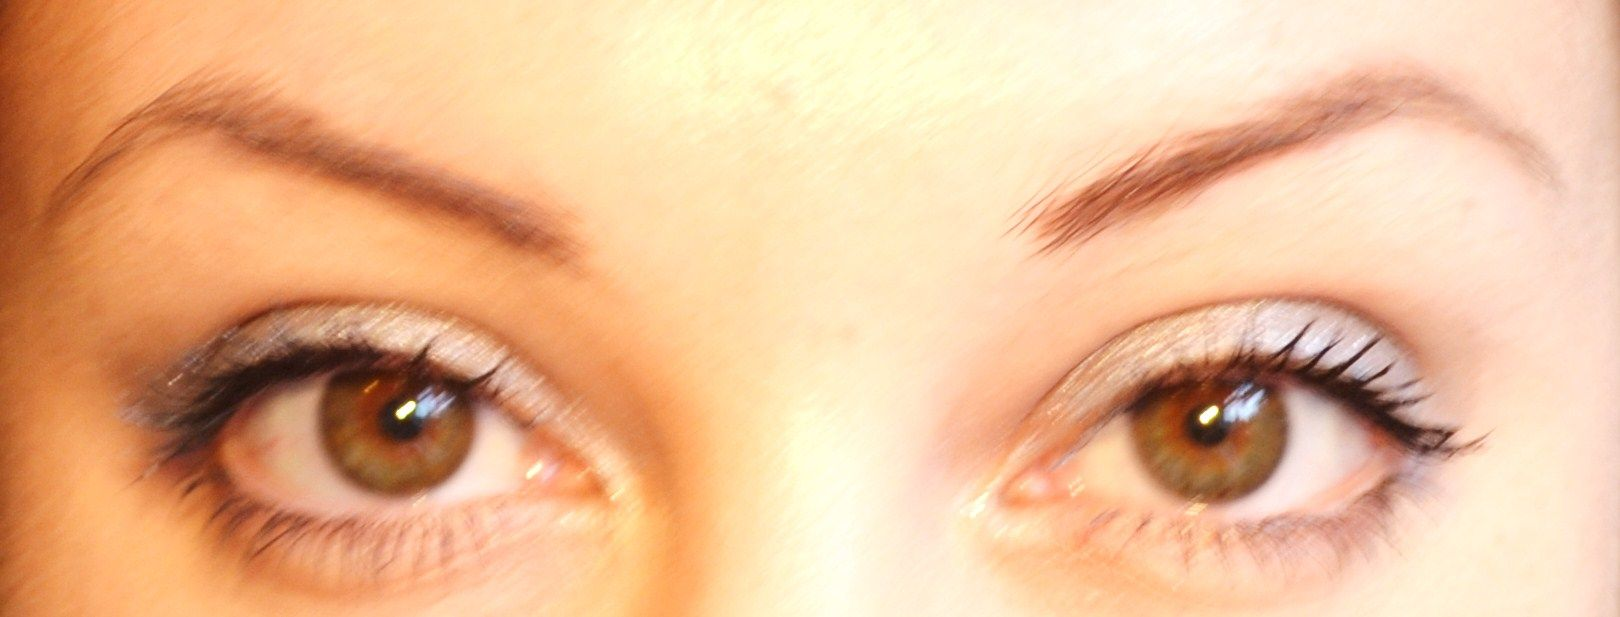 Beauty Tip Of The Day Pain Free Eyebrows Tweezing Tweeze Your